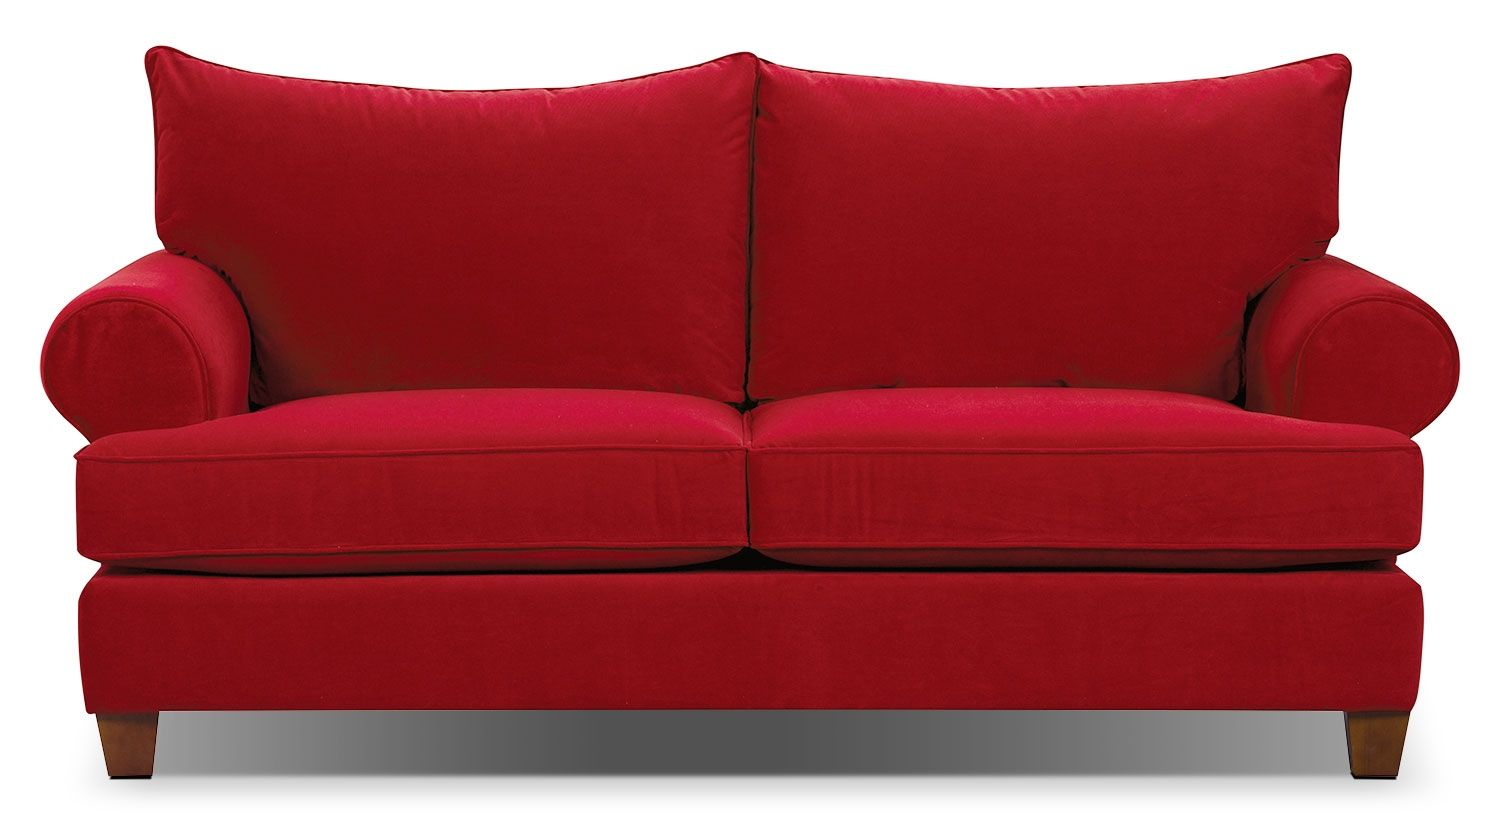 Paige Microsuede Sofa Red The Brick